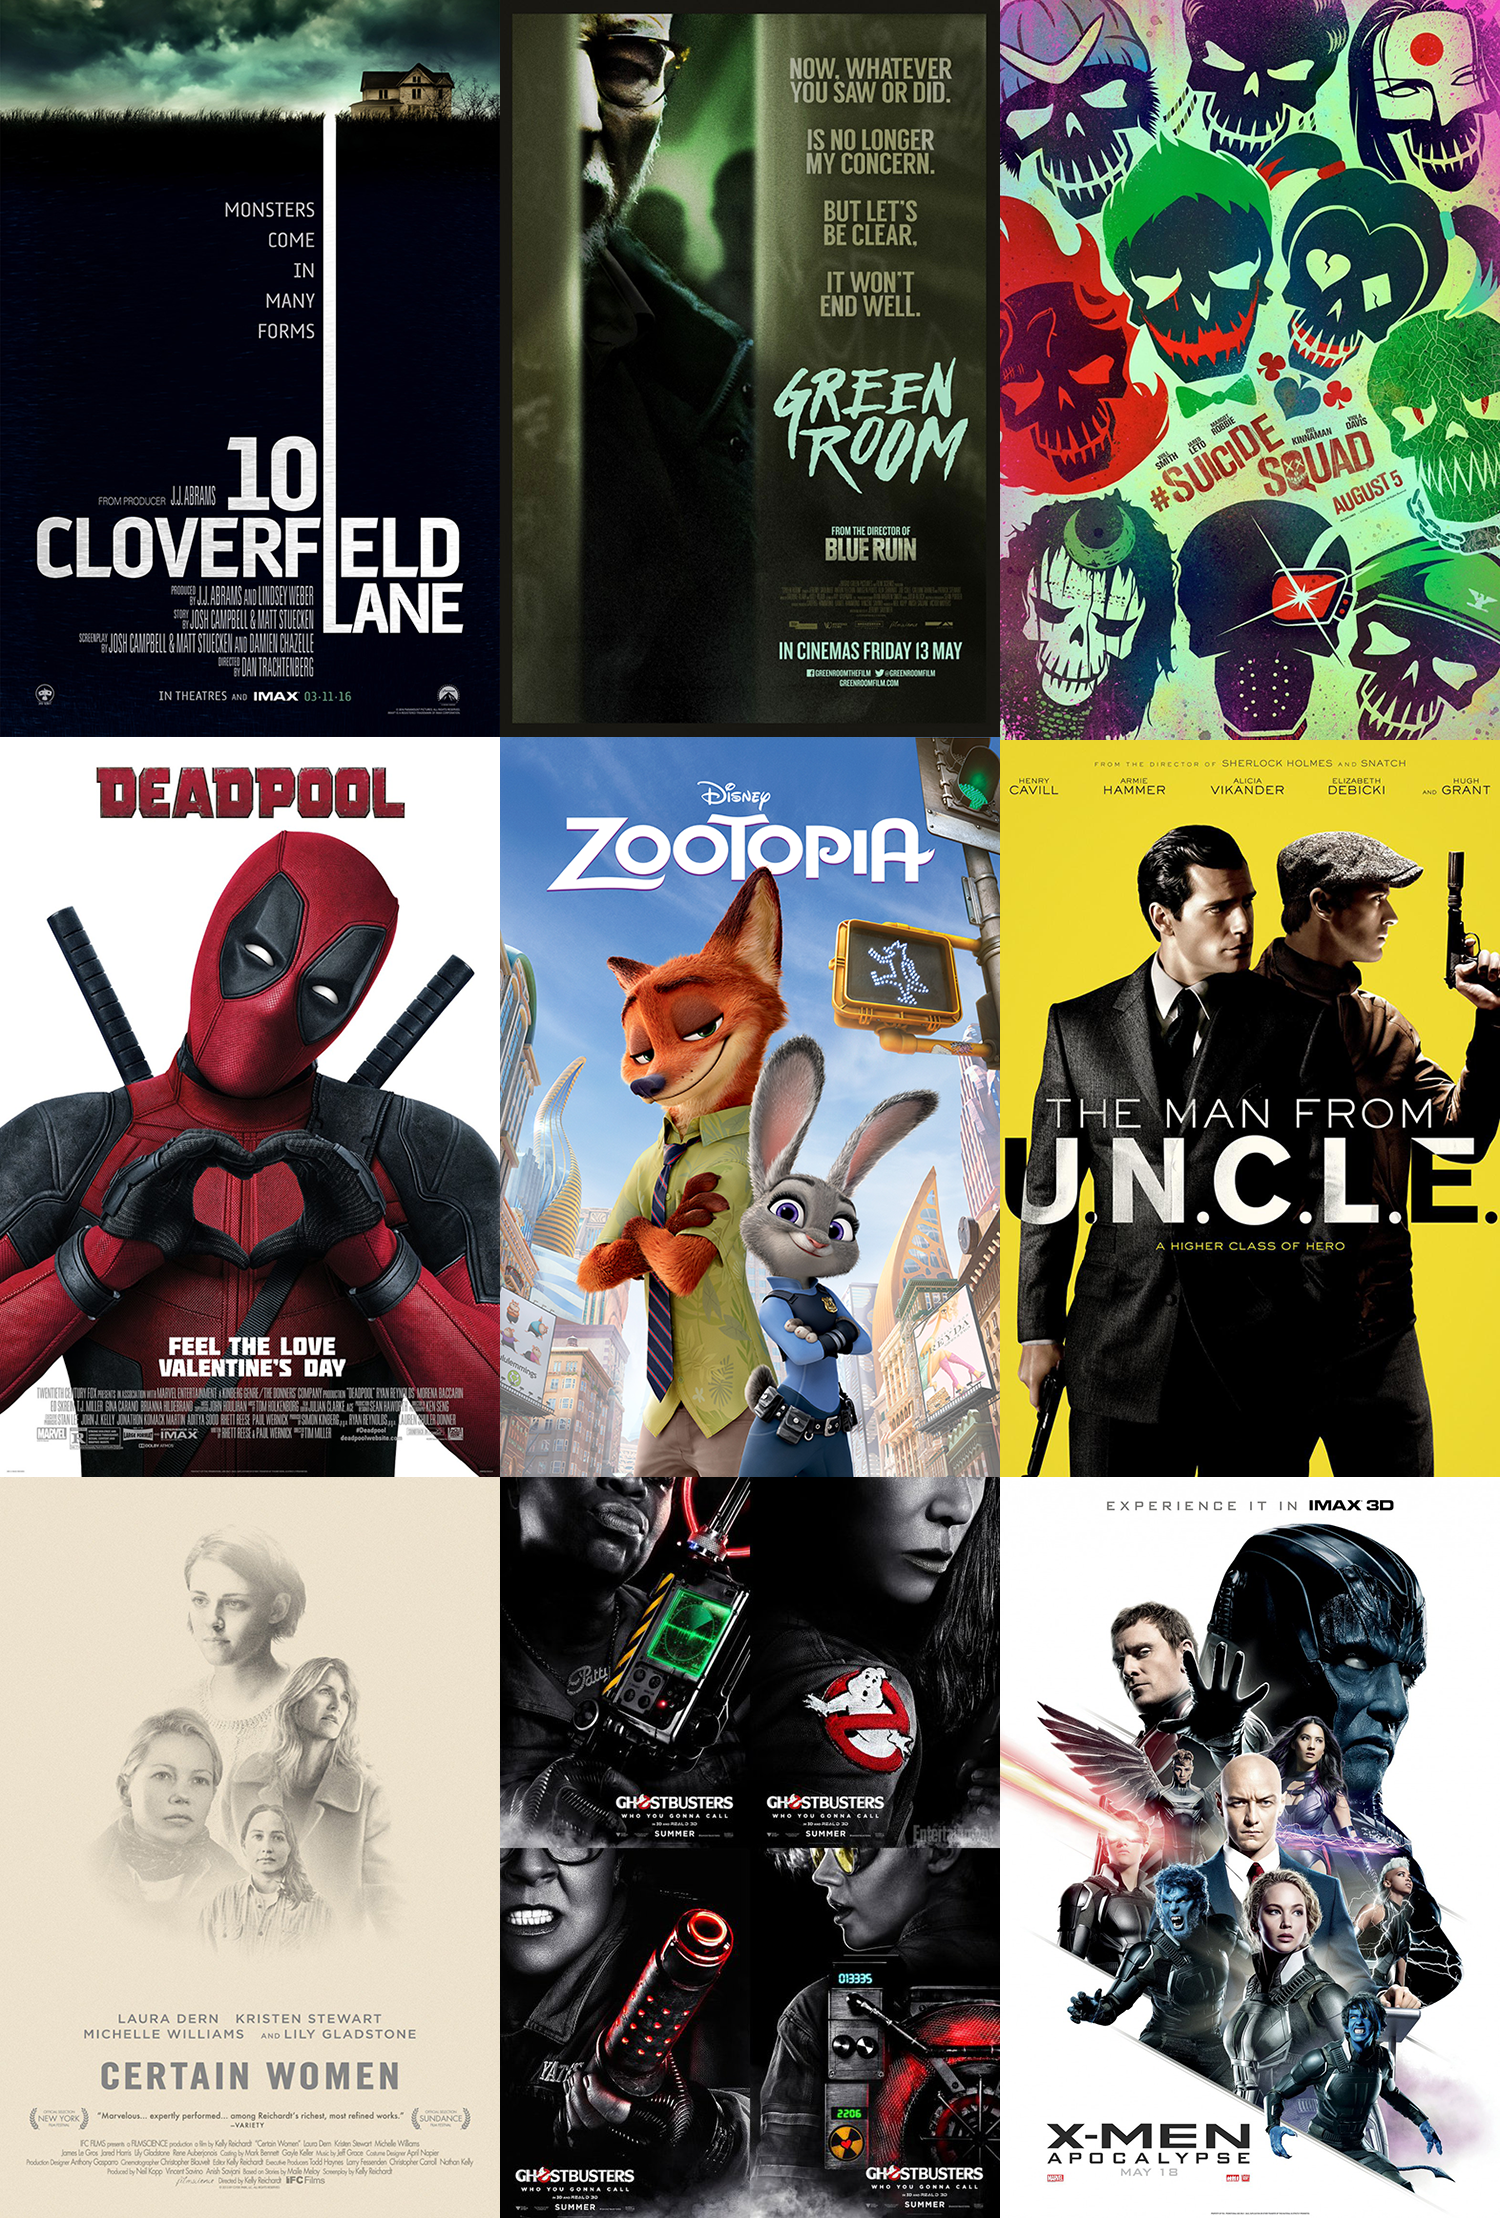 9 posters Deadpool Green room Suicide Squad 10 Cloverfield Lane Zootopia Man From UNCLE Certain Women Ghostbuster 2016 XMen Apocalypse